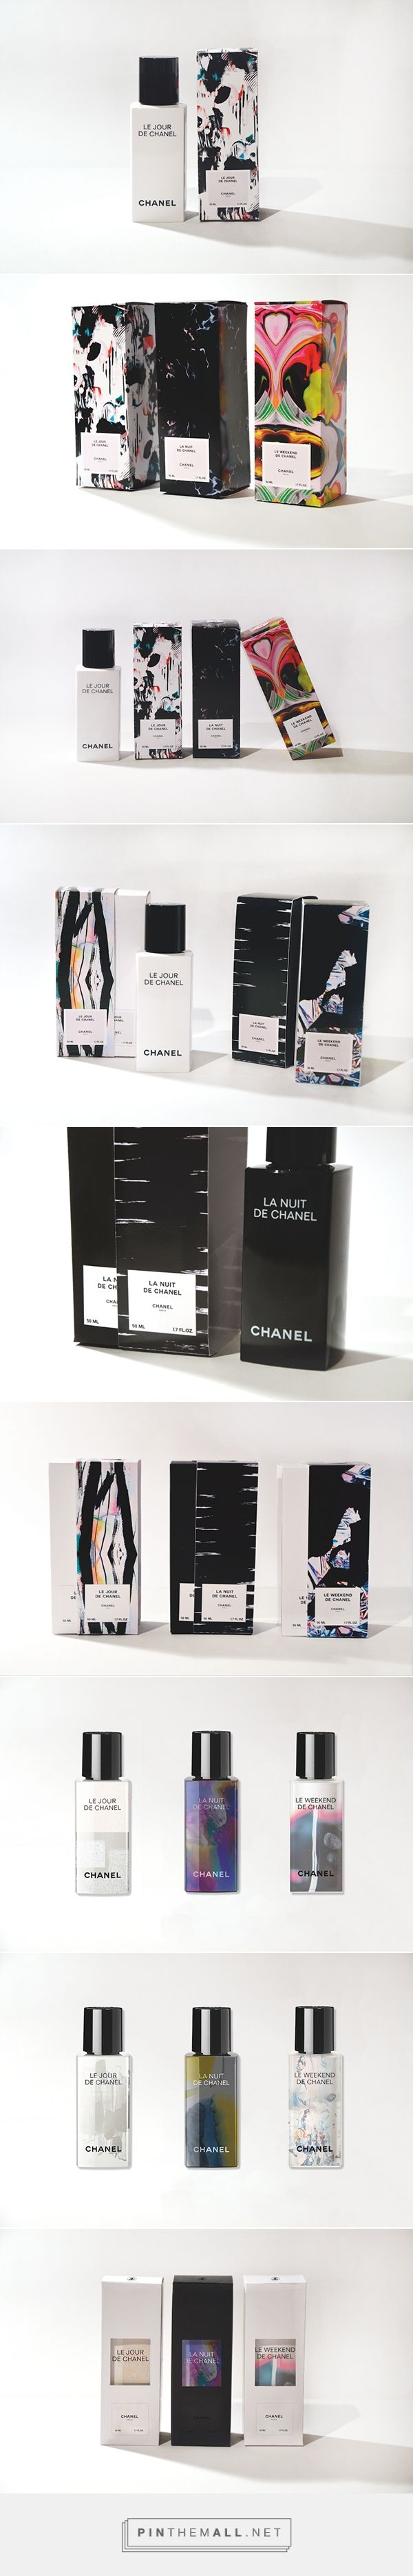 Pack Chanel on Behance curated by Packaging Diva PD. Creating packaging limited edition Chanel in a stunning and quirky mind, while keeping a sober mind recalling Chanel.